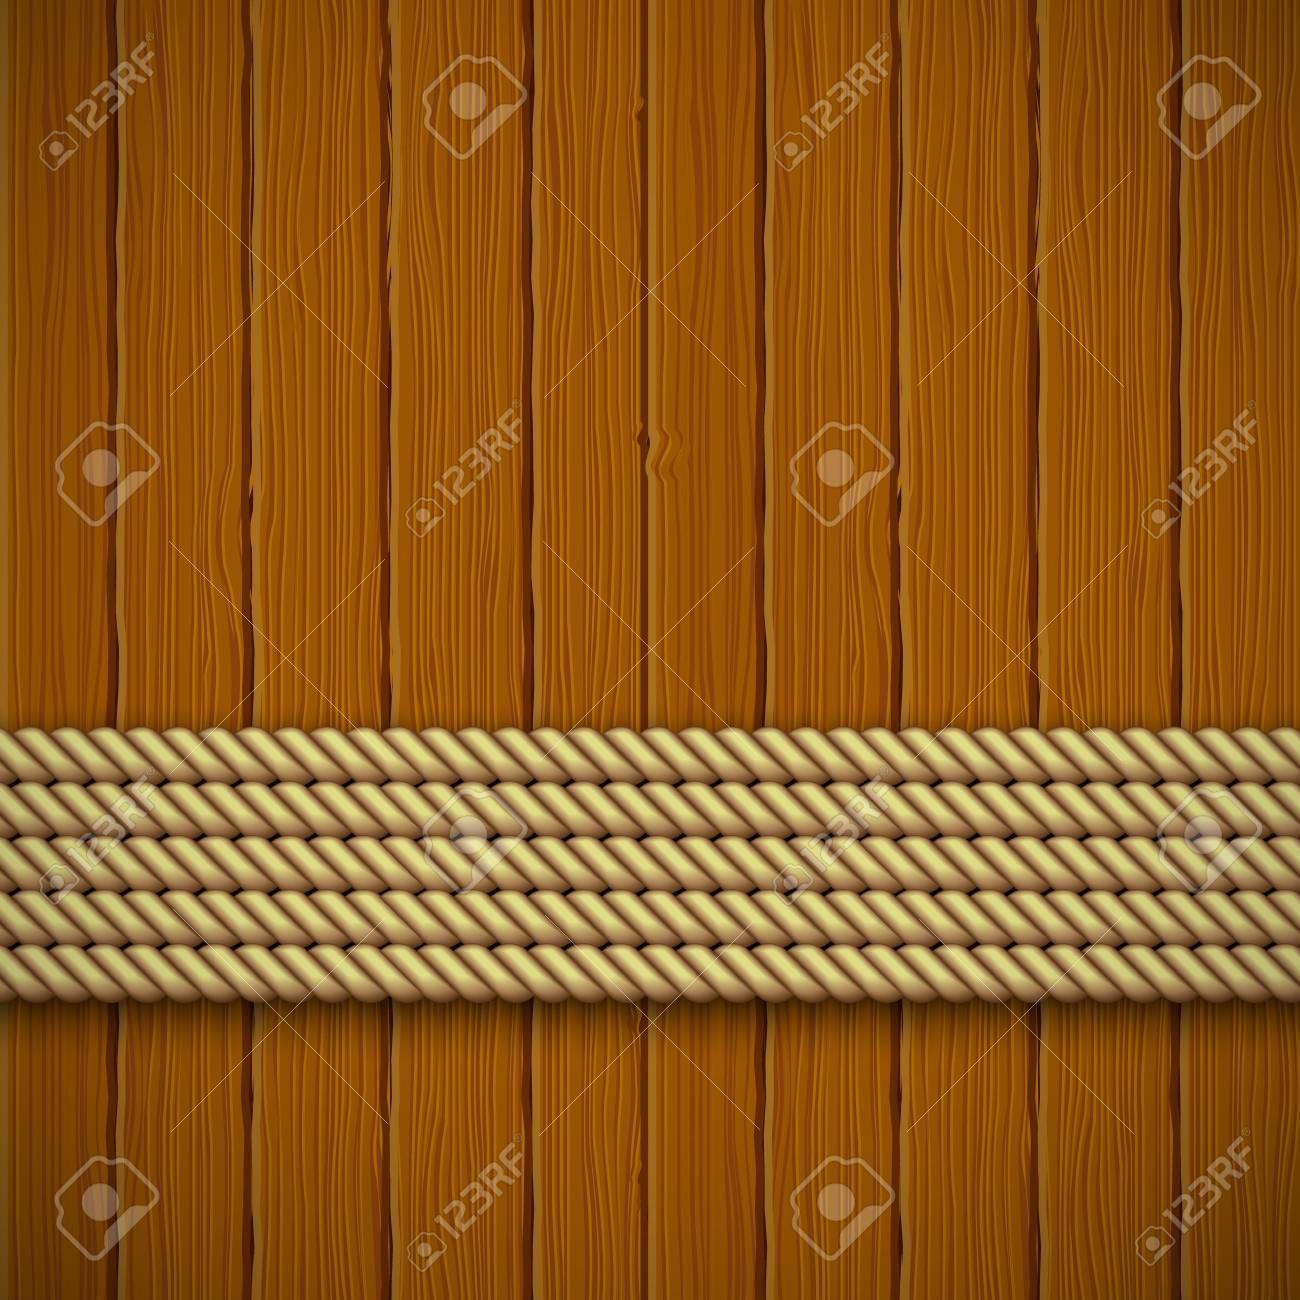 Wooden Texture Vector Illustration Royalty Free Cliparts Vectors